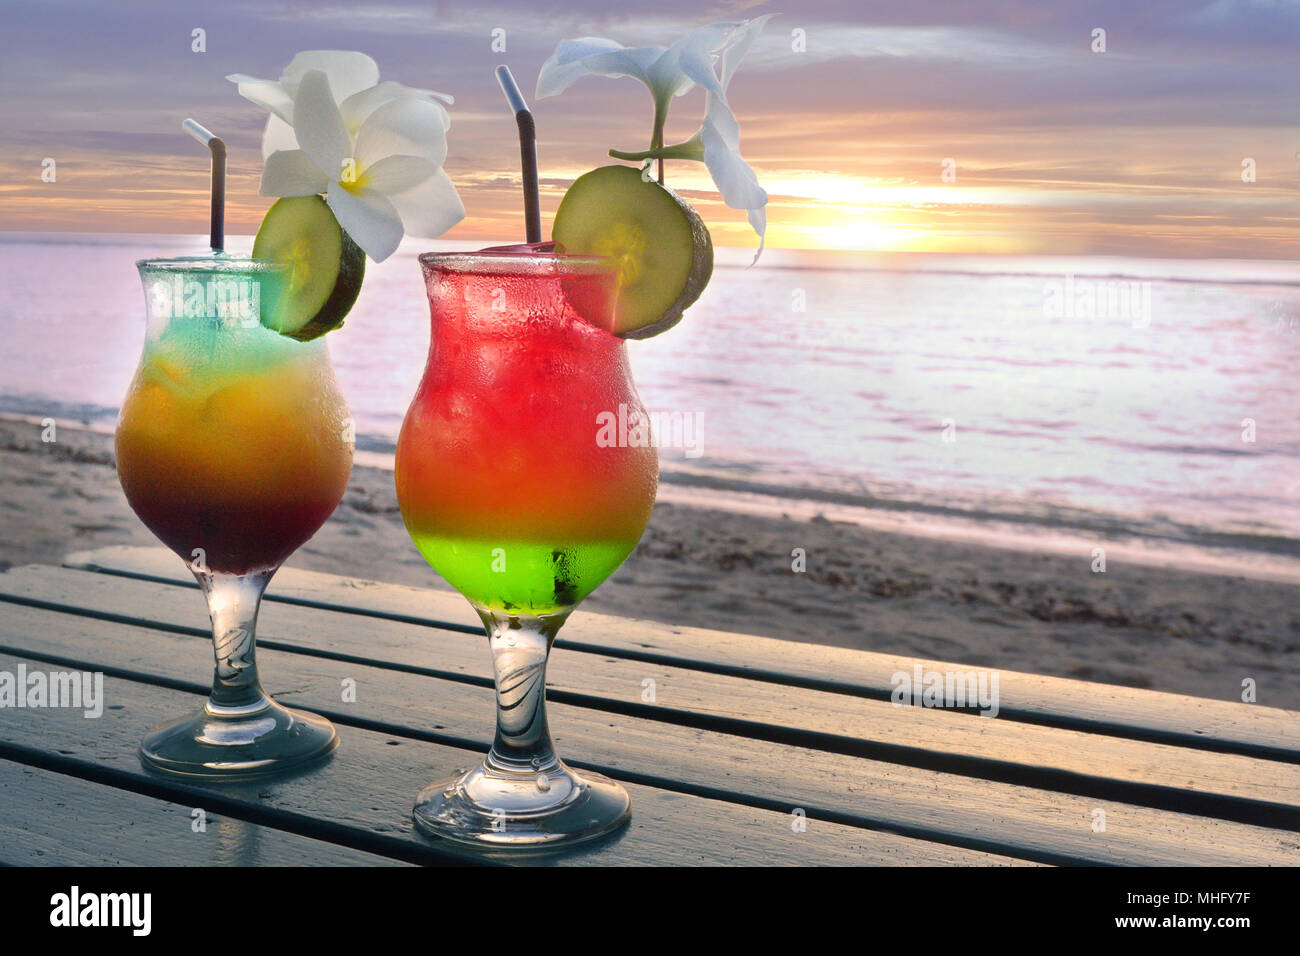 Two Cocktails Drinks Served In A Pacific Island Honeymoon